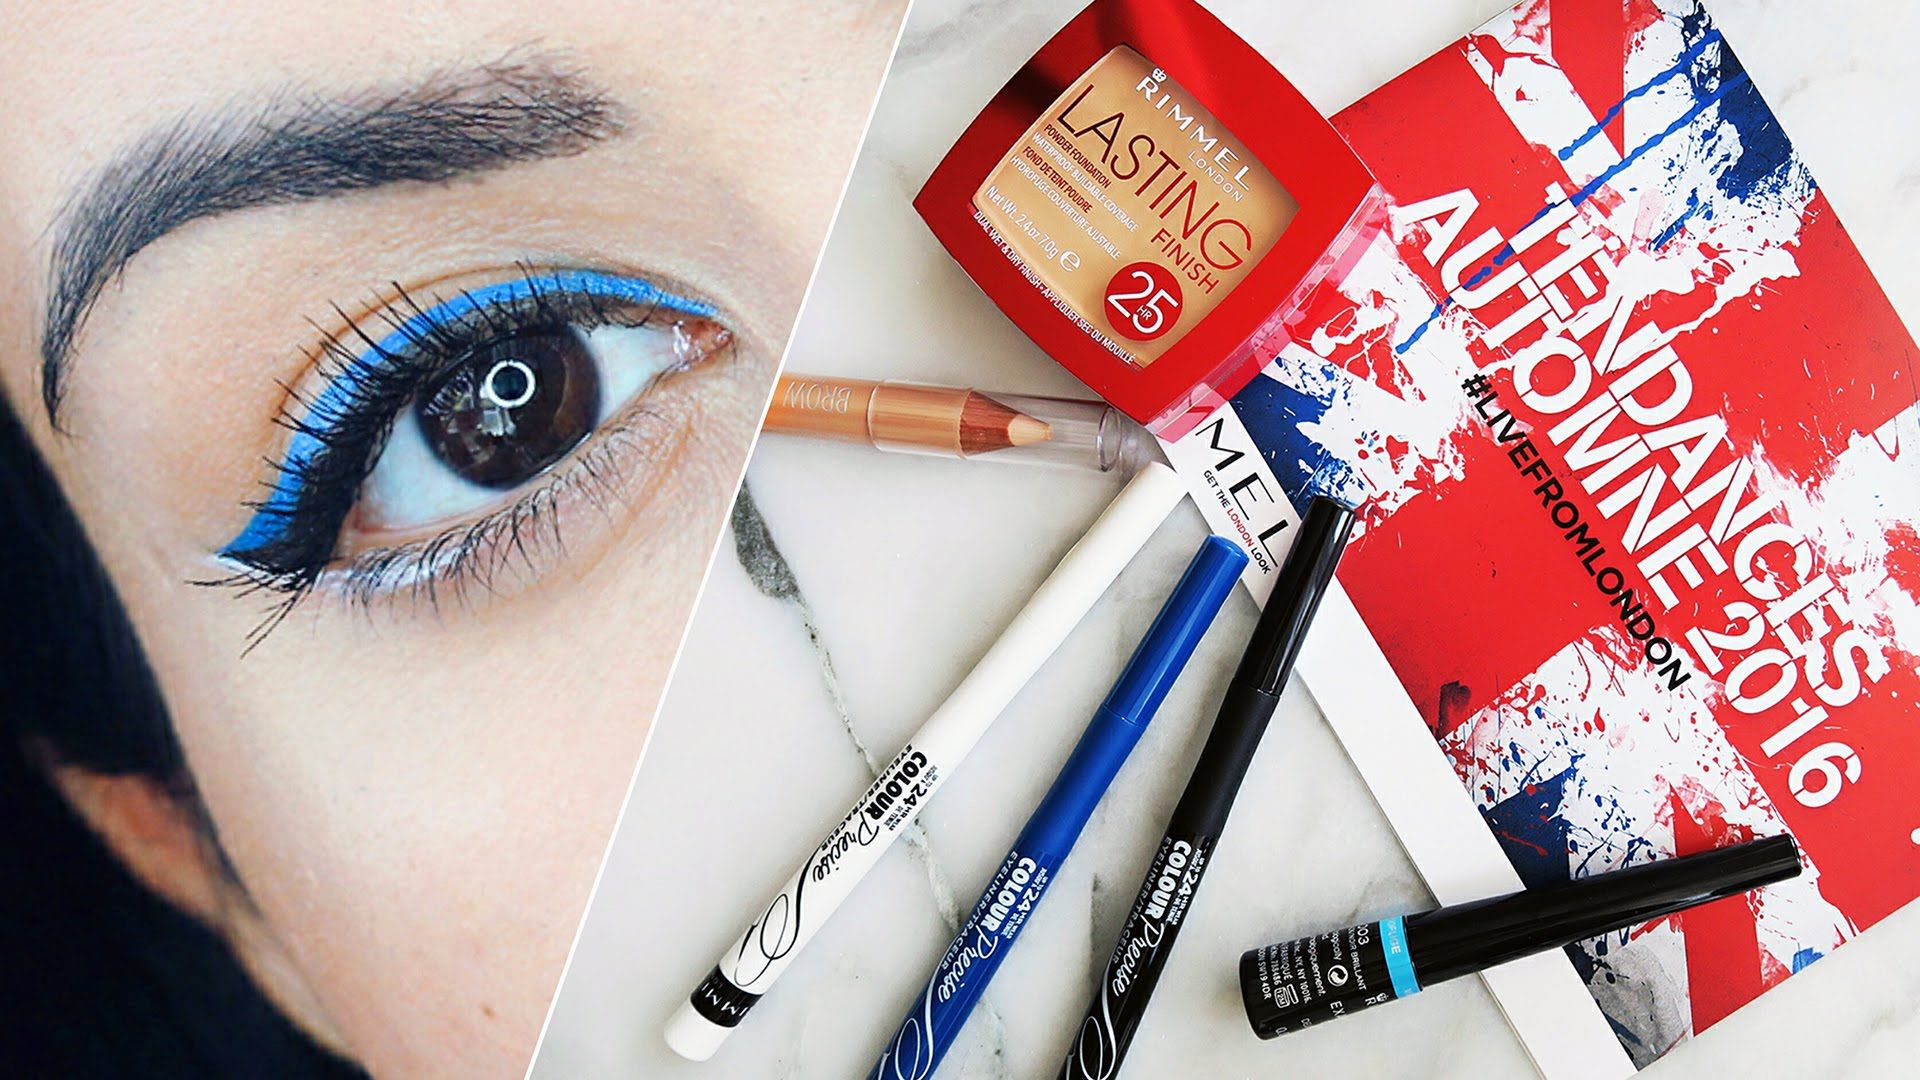 NEW Drugstore Makeup from Rimmel Fall 2016 Makeup